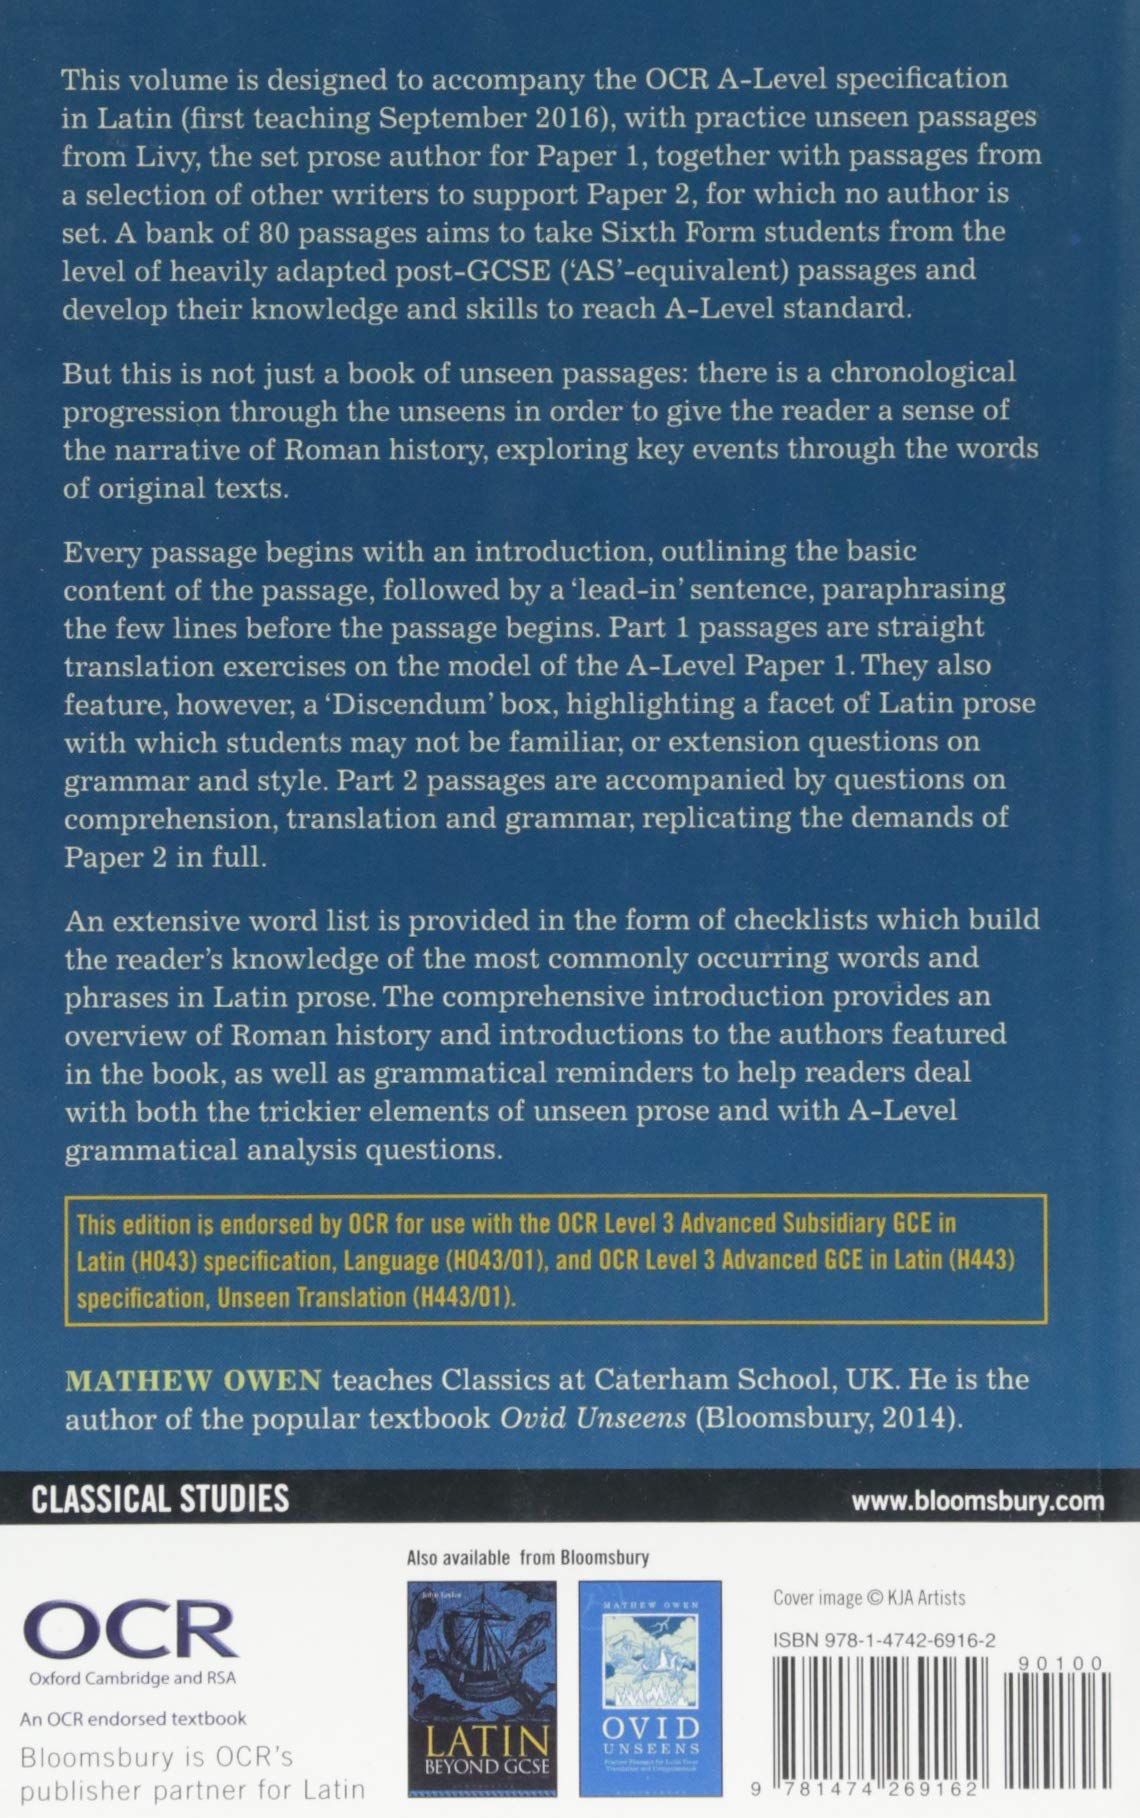 Prose Unseens for A-Level Latin (Latin Language Learning